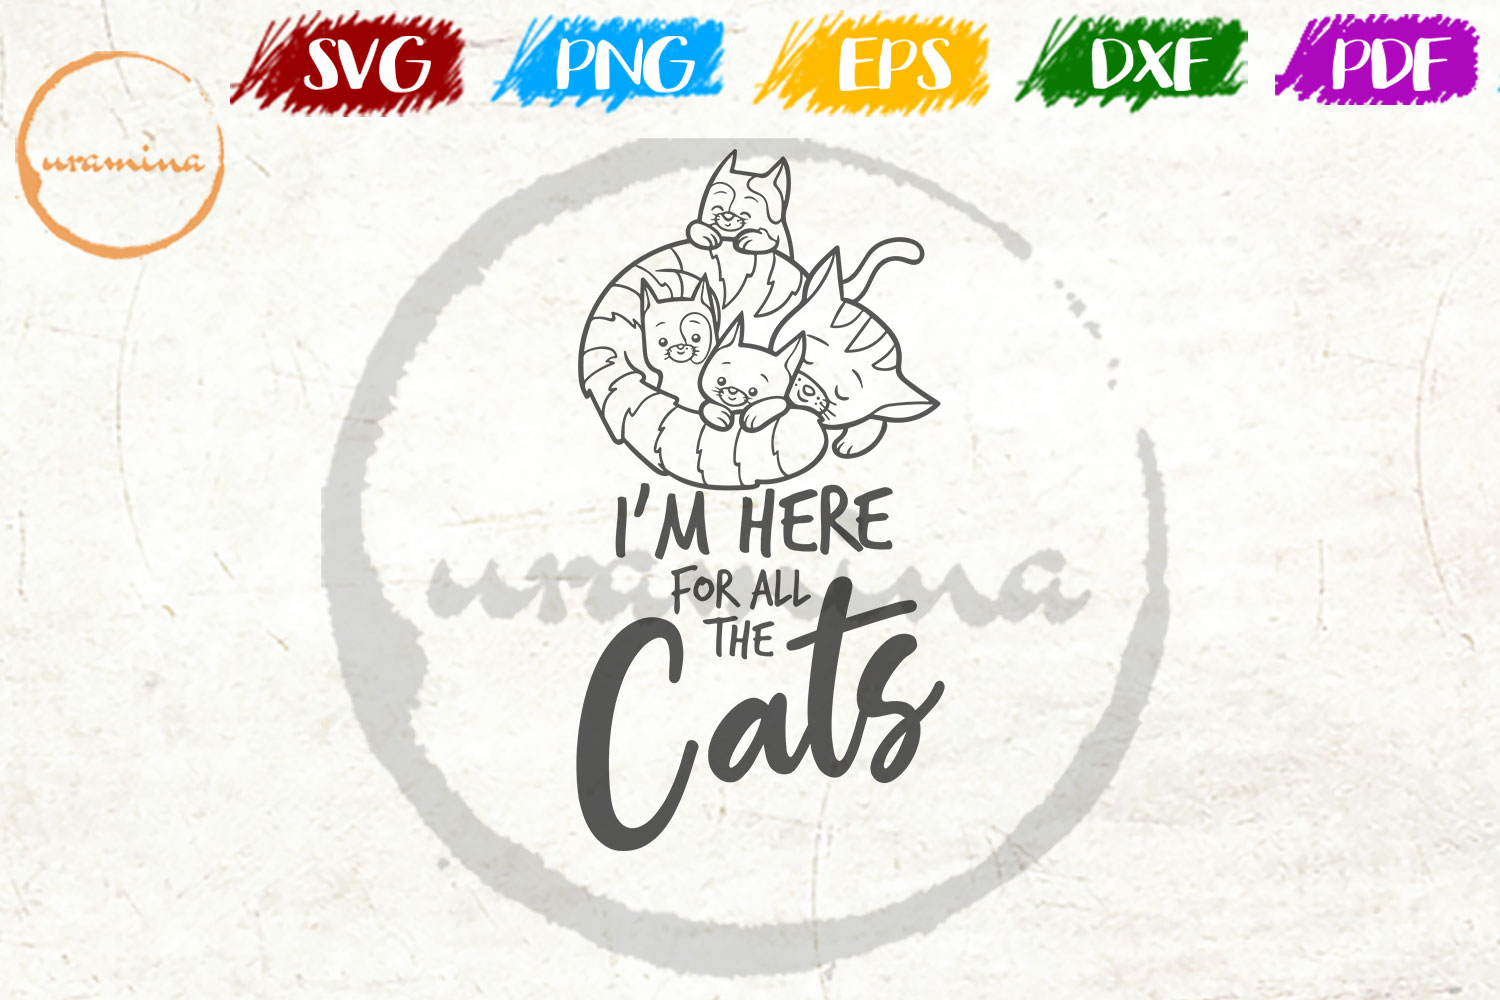 Download Free I M Here For All The Cats Graphic By Uramina Creative Fabrica for Cricut Explore, Silhouette and other cutting machines.